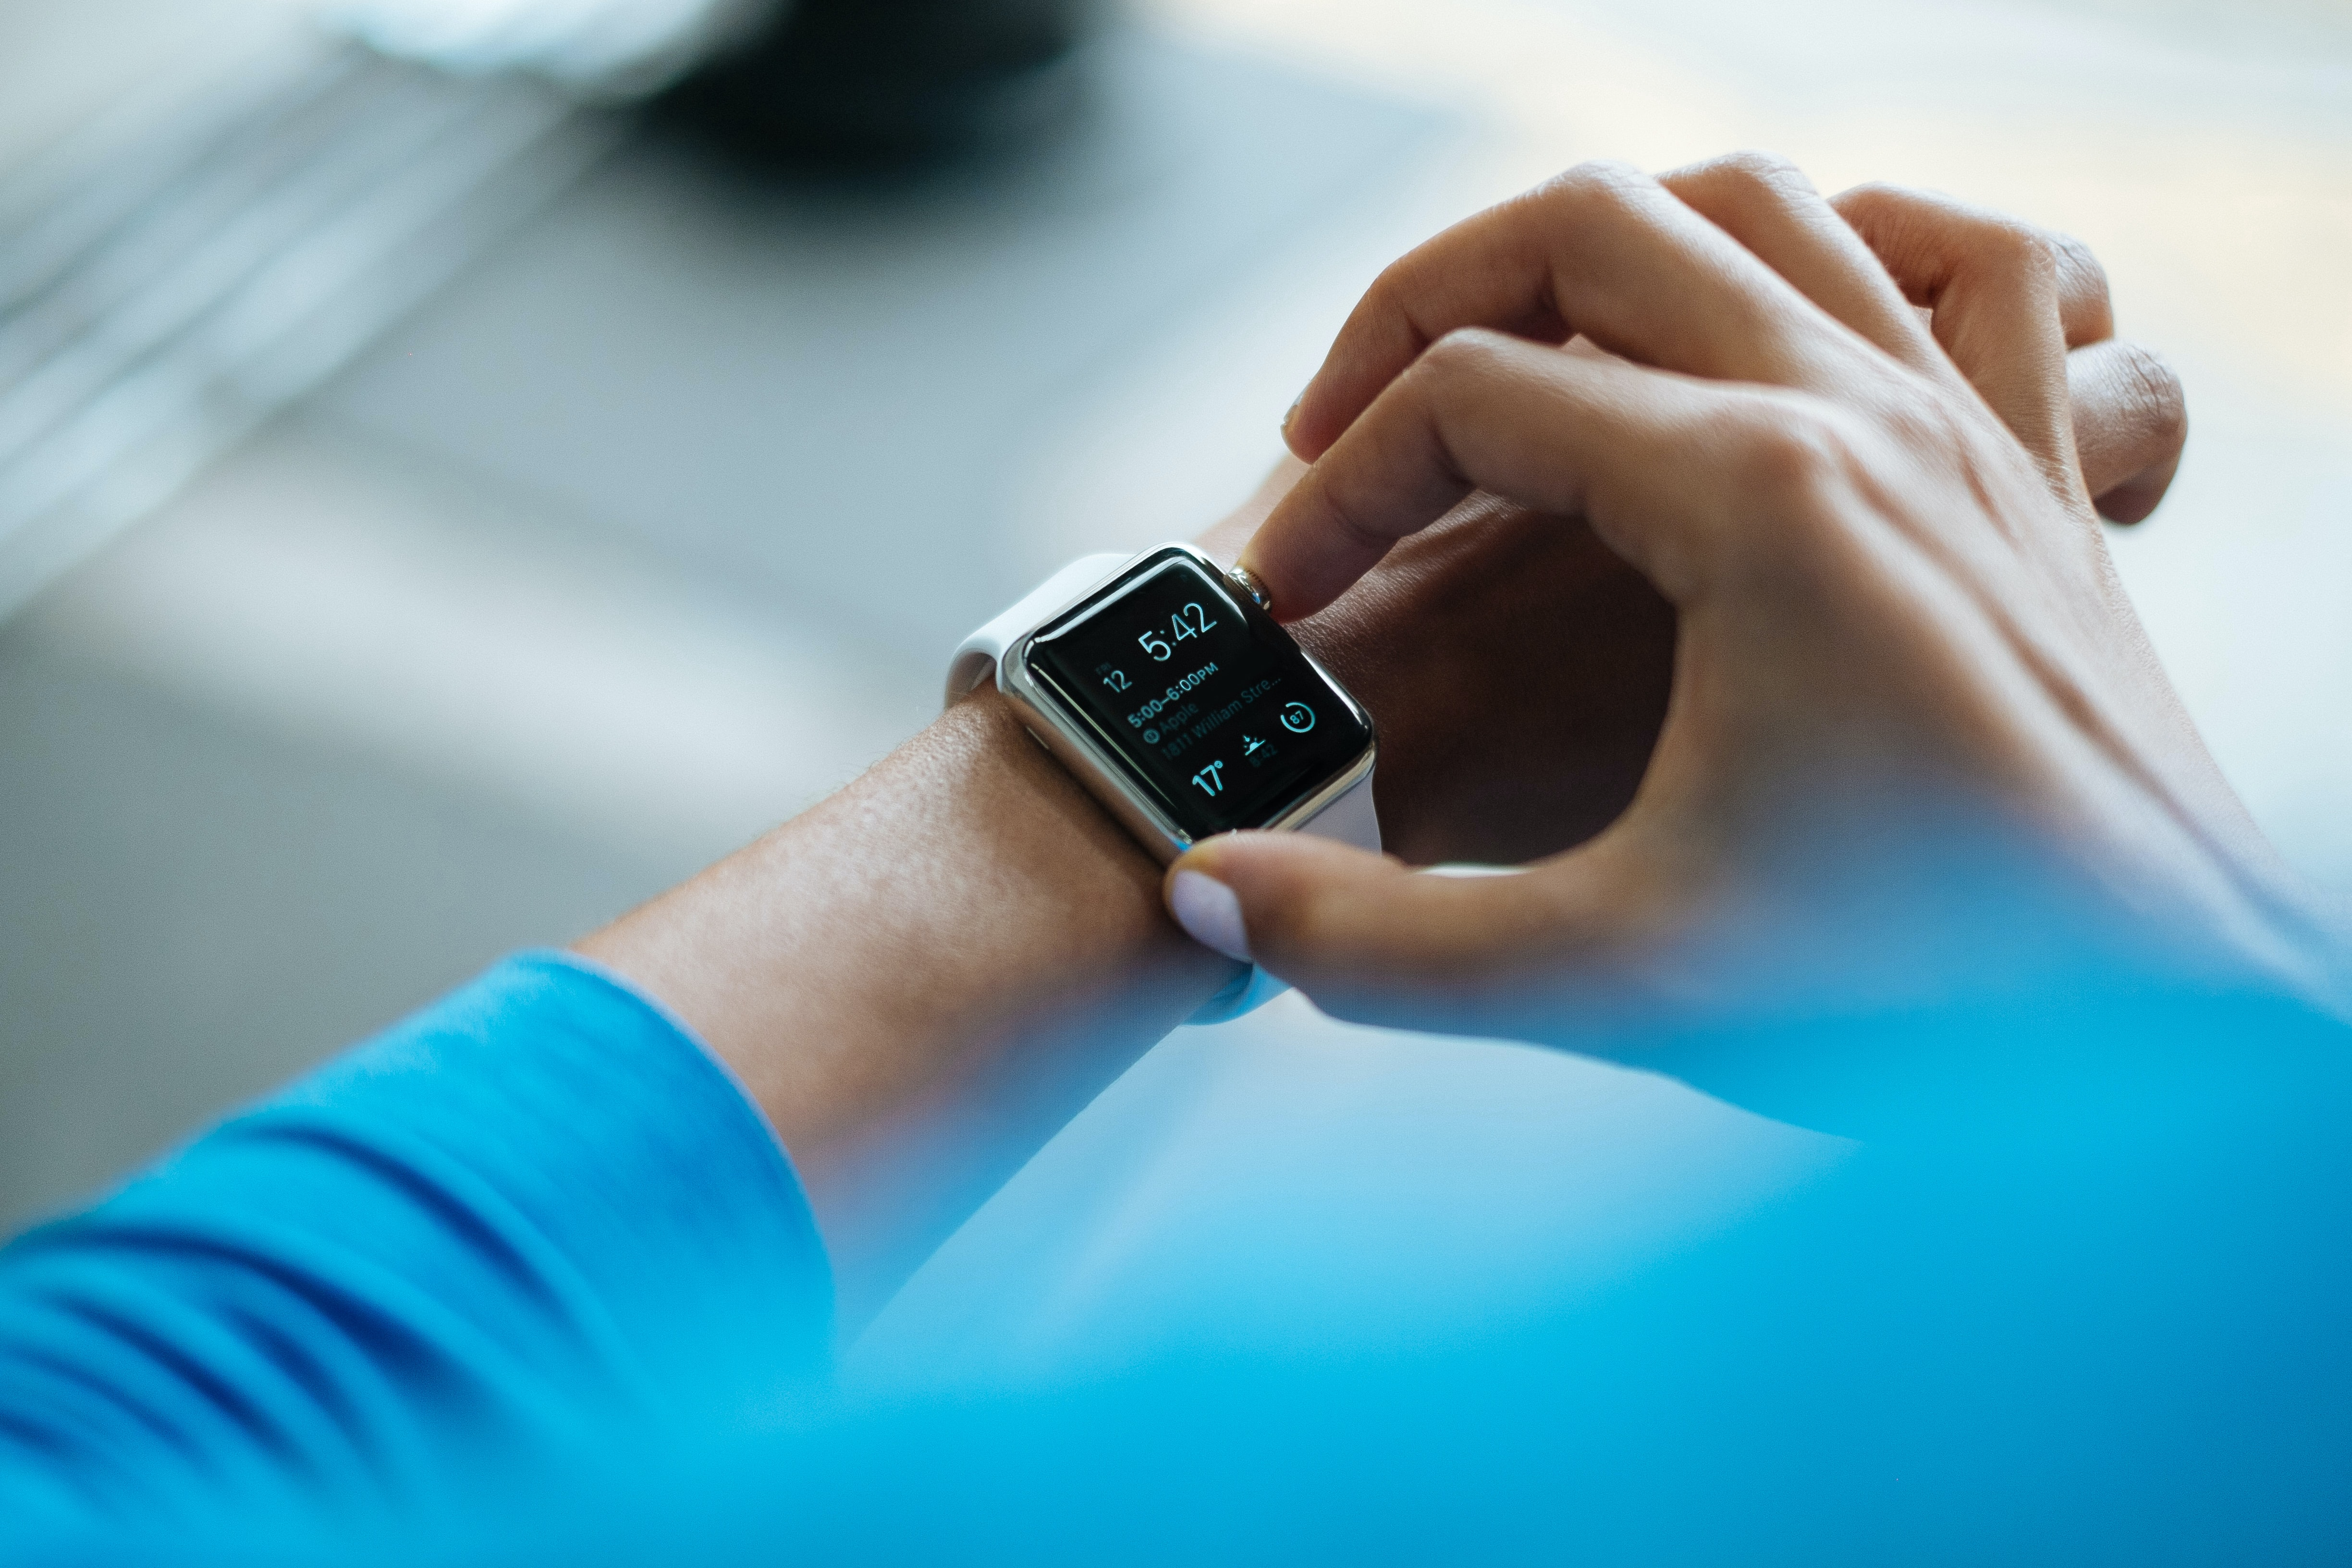 Wearable medical apps